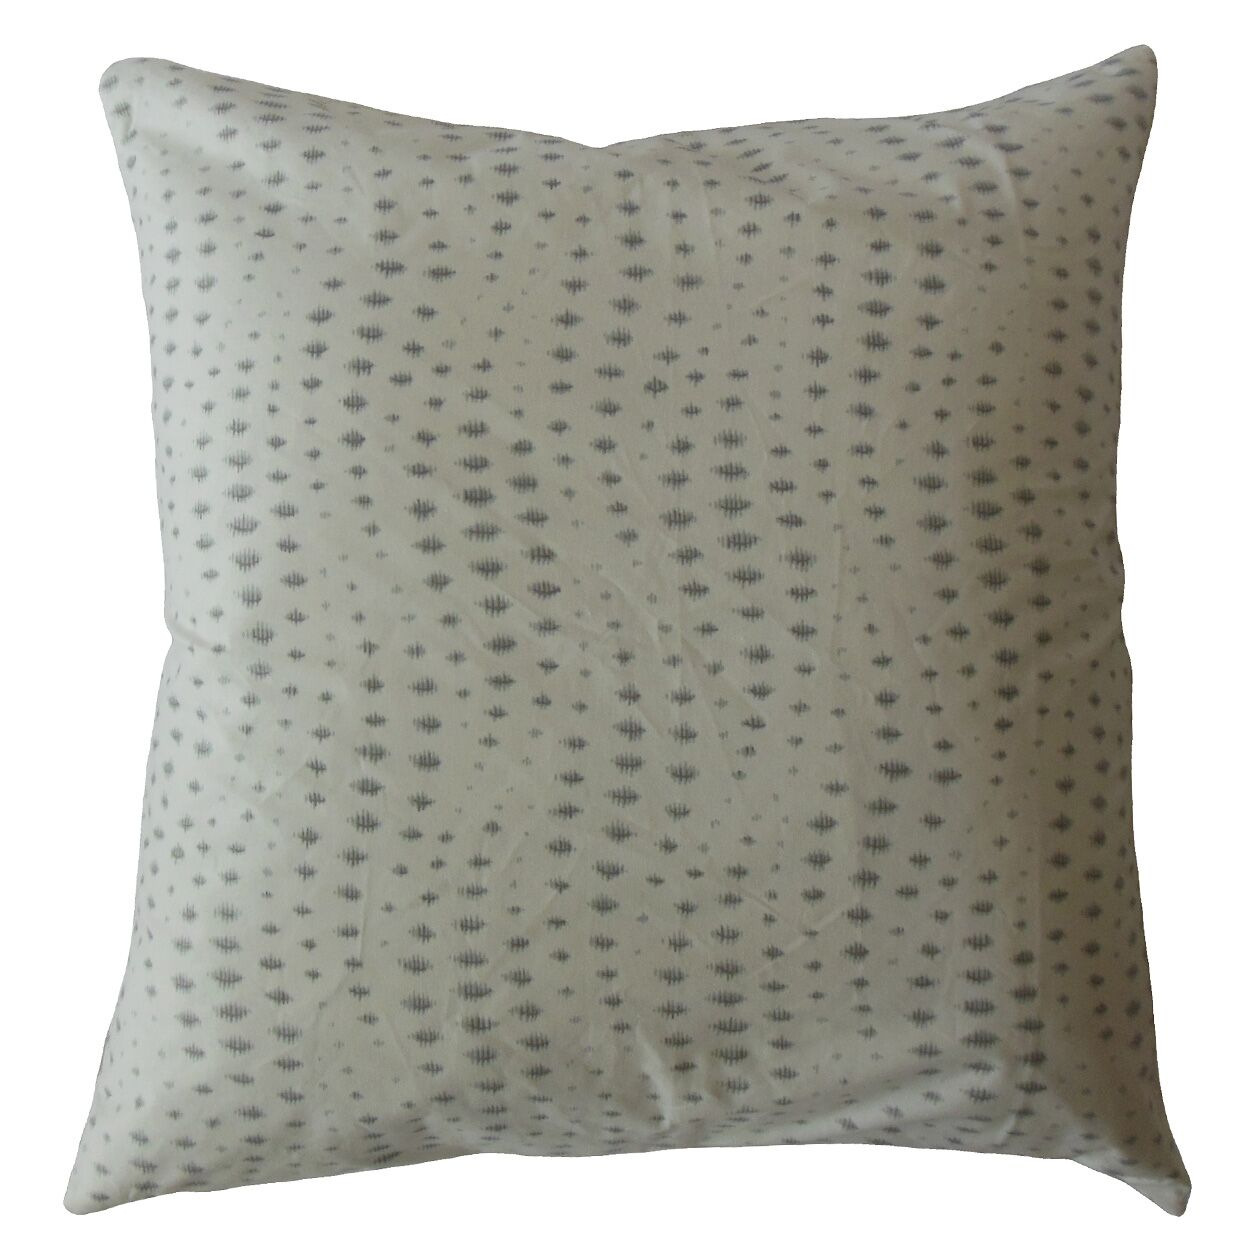 Lam Cotton Pillow Size: 20